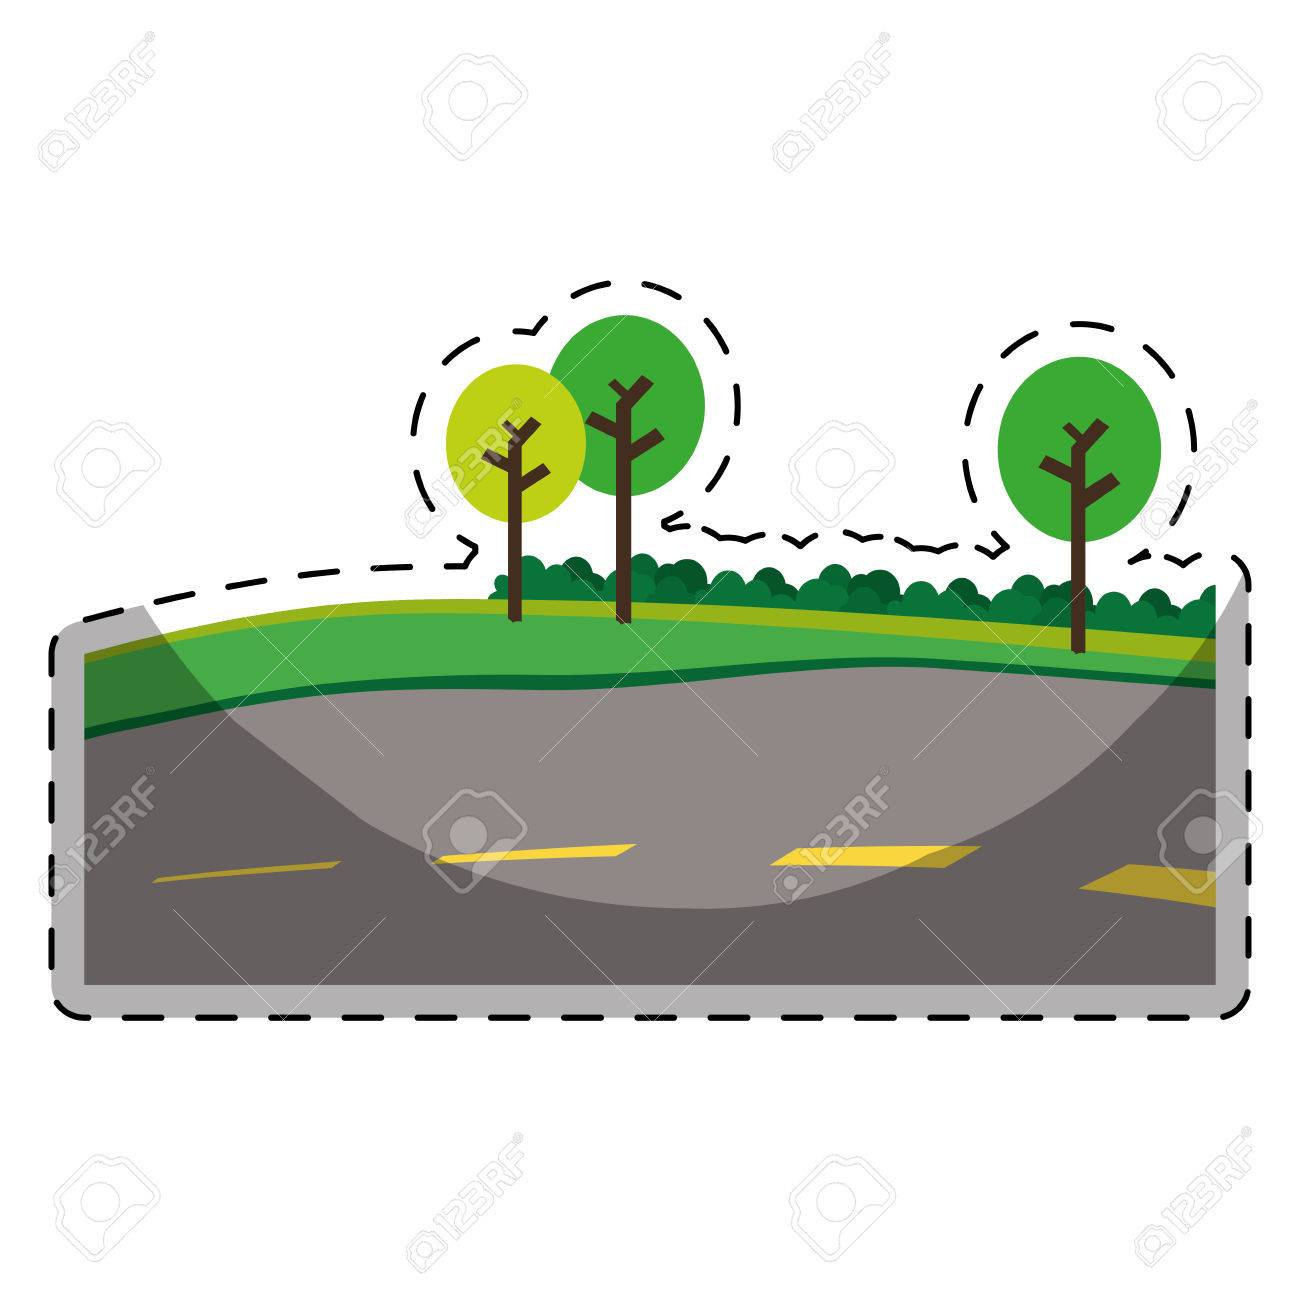 Pathway clipart paved road. Free download clip art